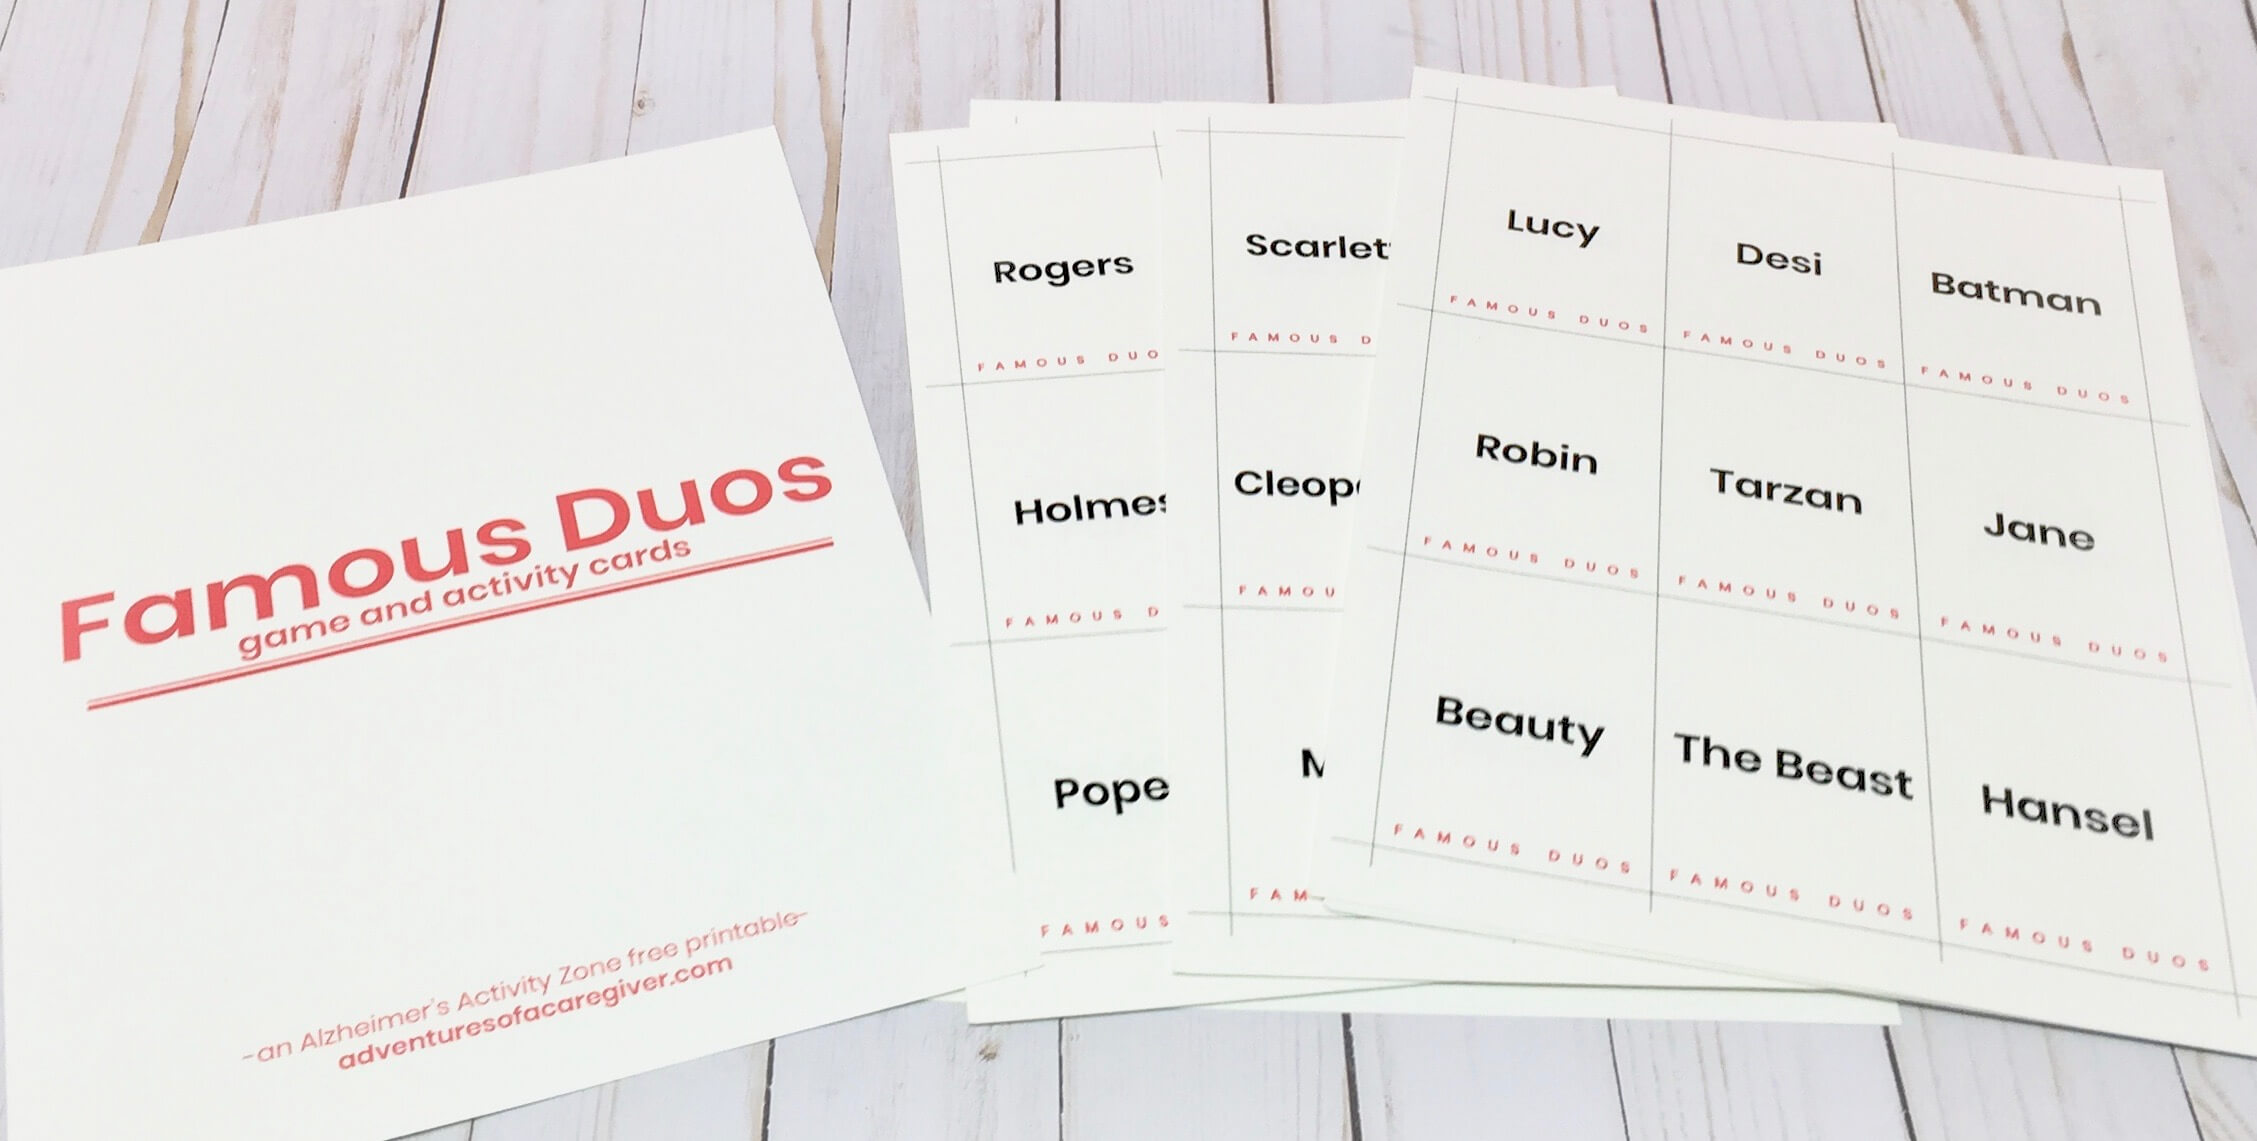 Famous Duos game and activity cards created for Alzheimer's and dementia patients